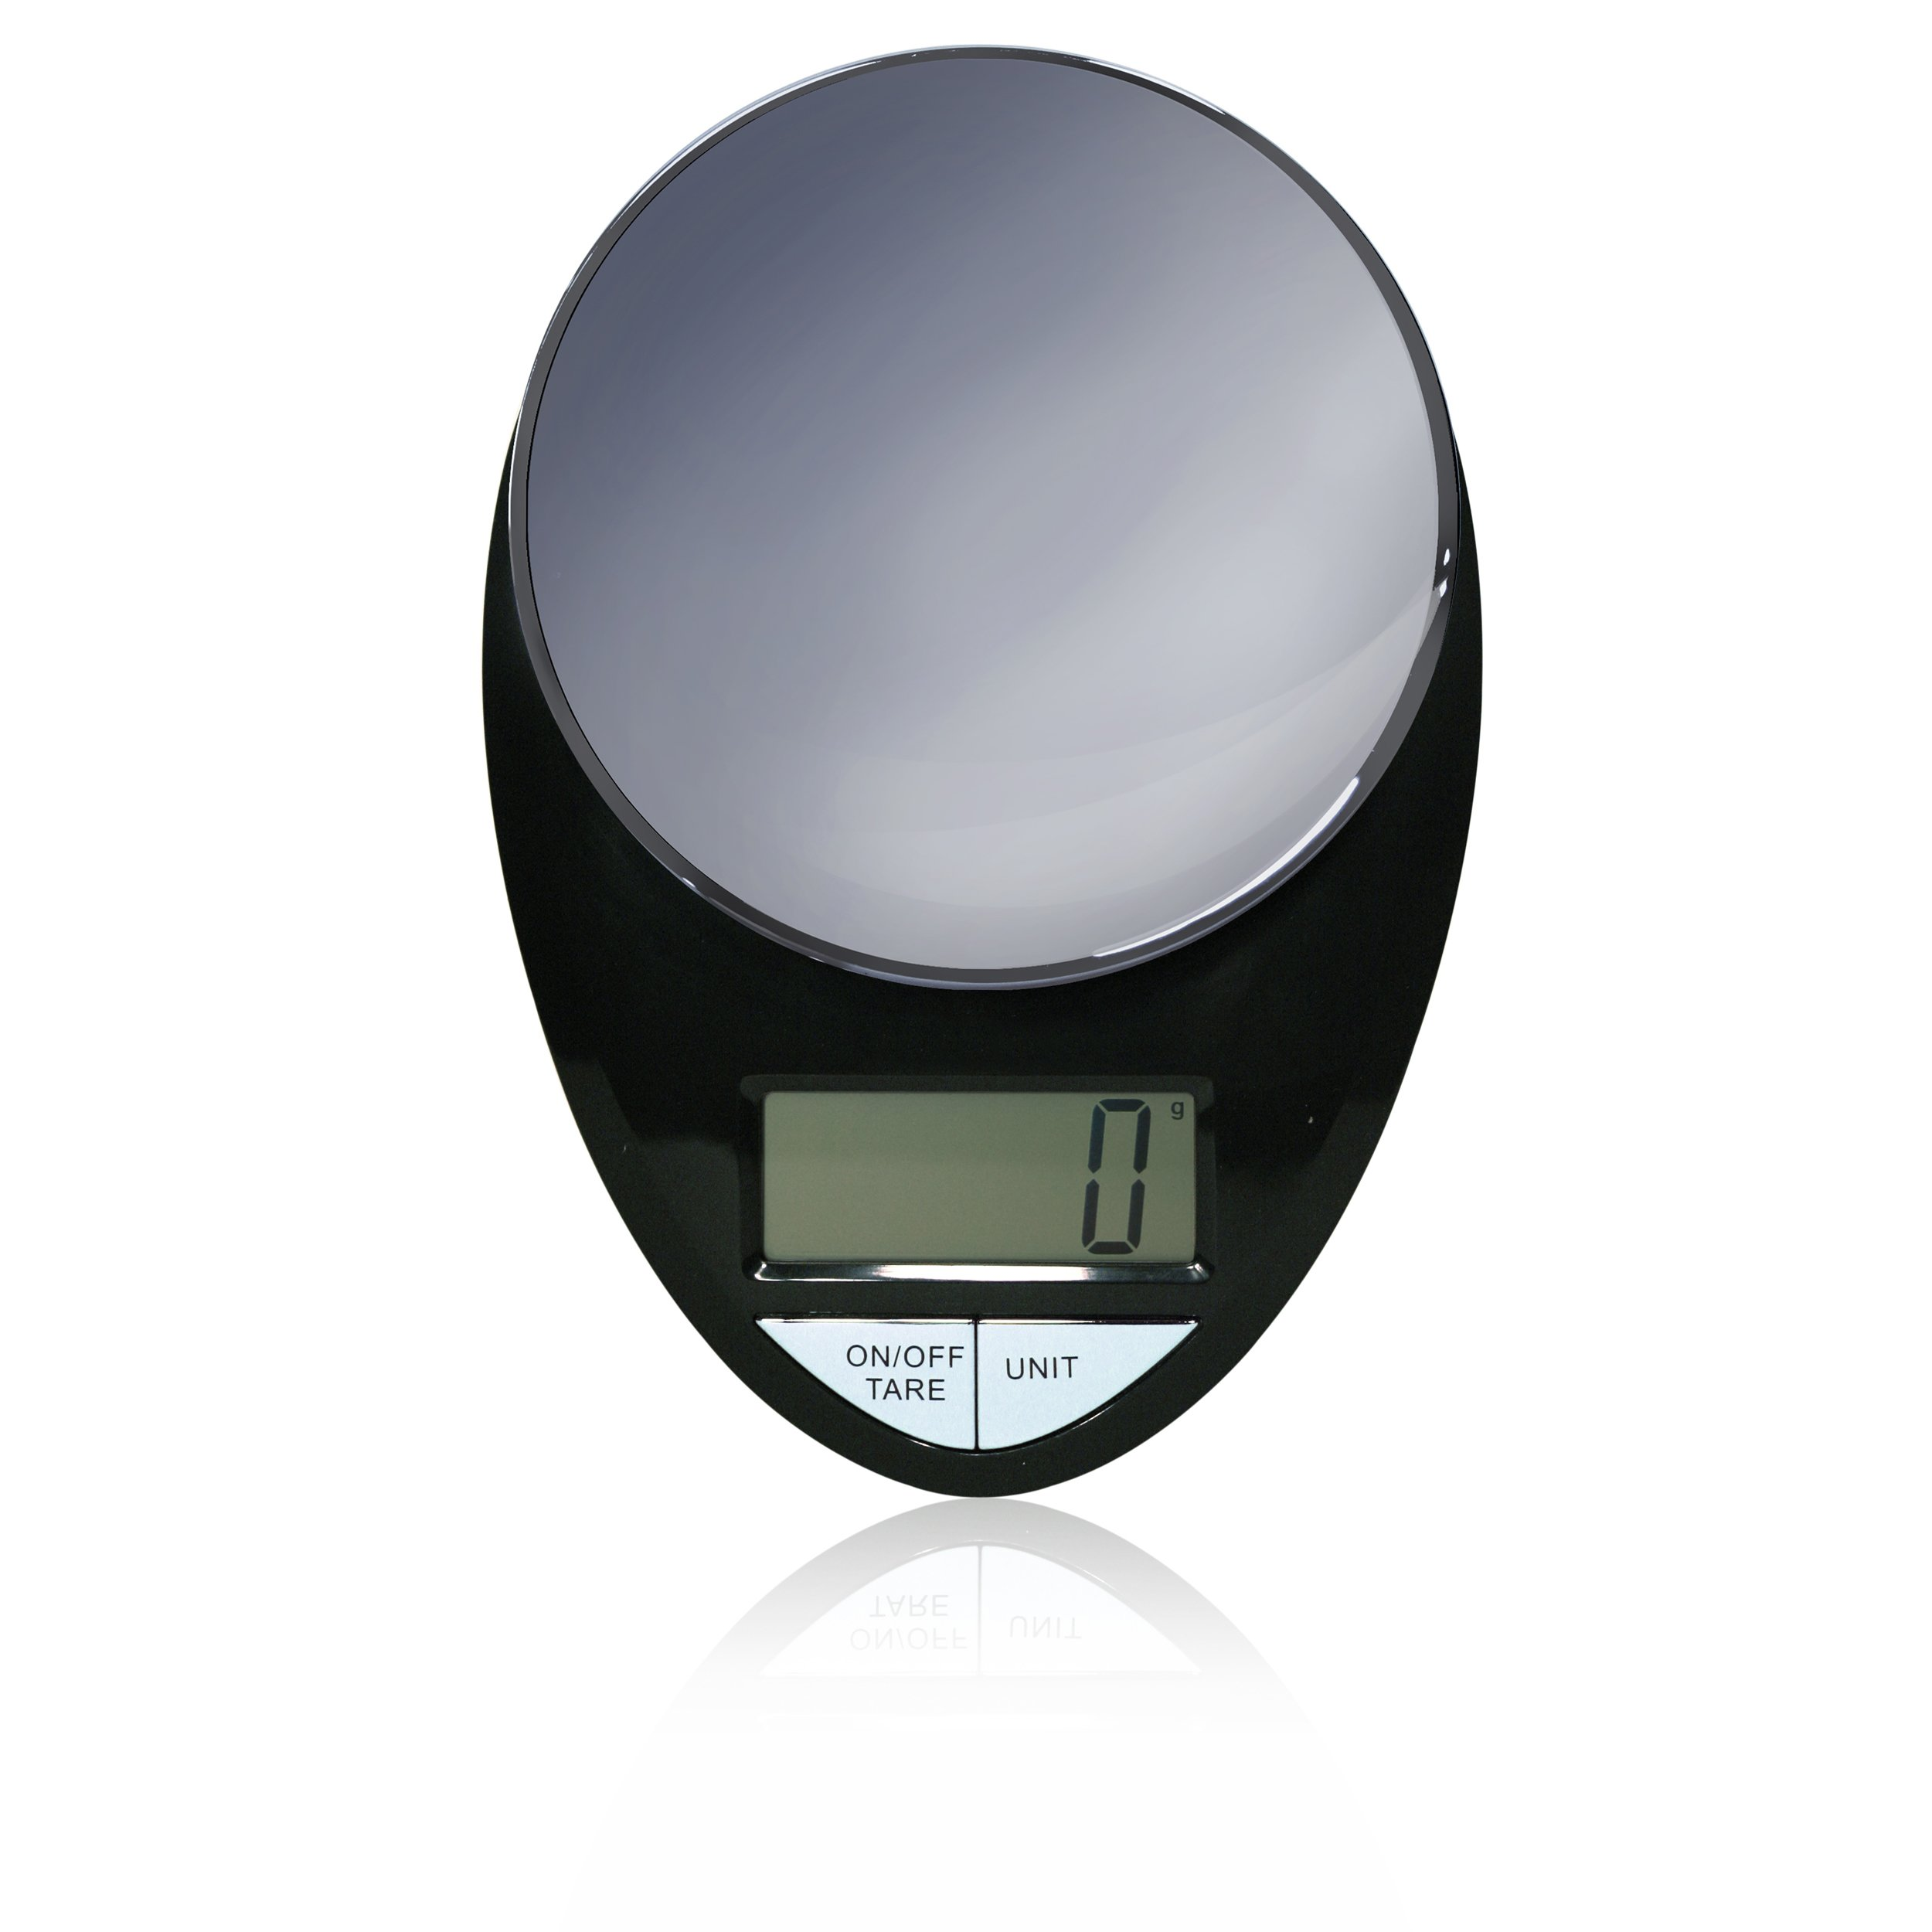 Bed bath and beyond bathroom scales - Scales At Bed Bath And Beyond Eatsmart Precision Digital Bathroom Scale Eatsmart Scale